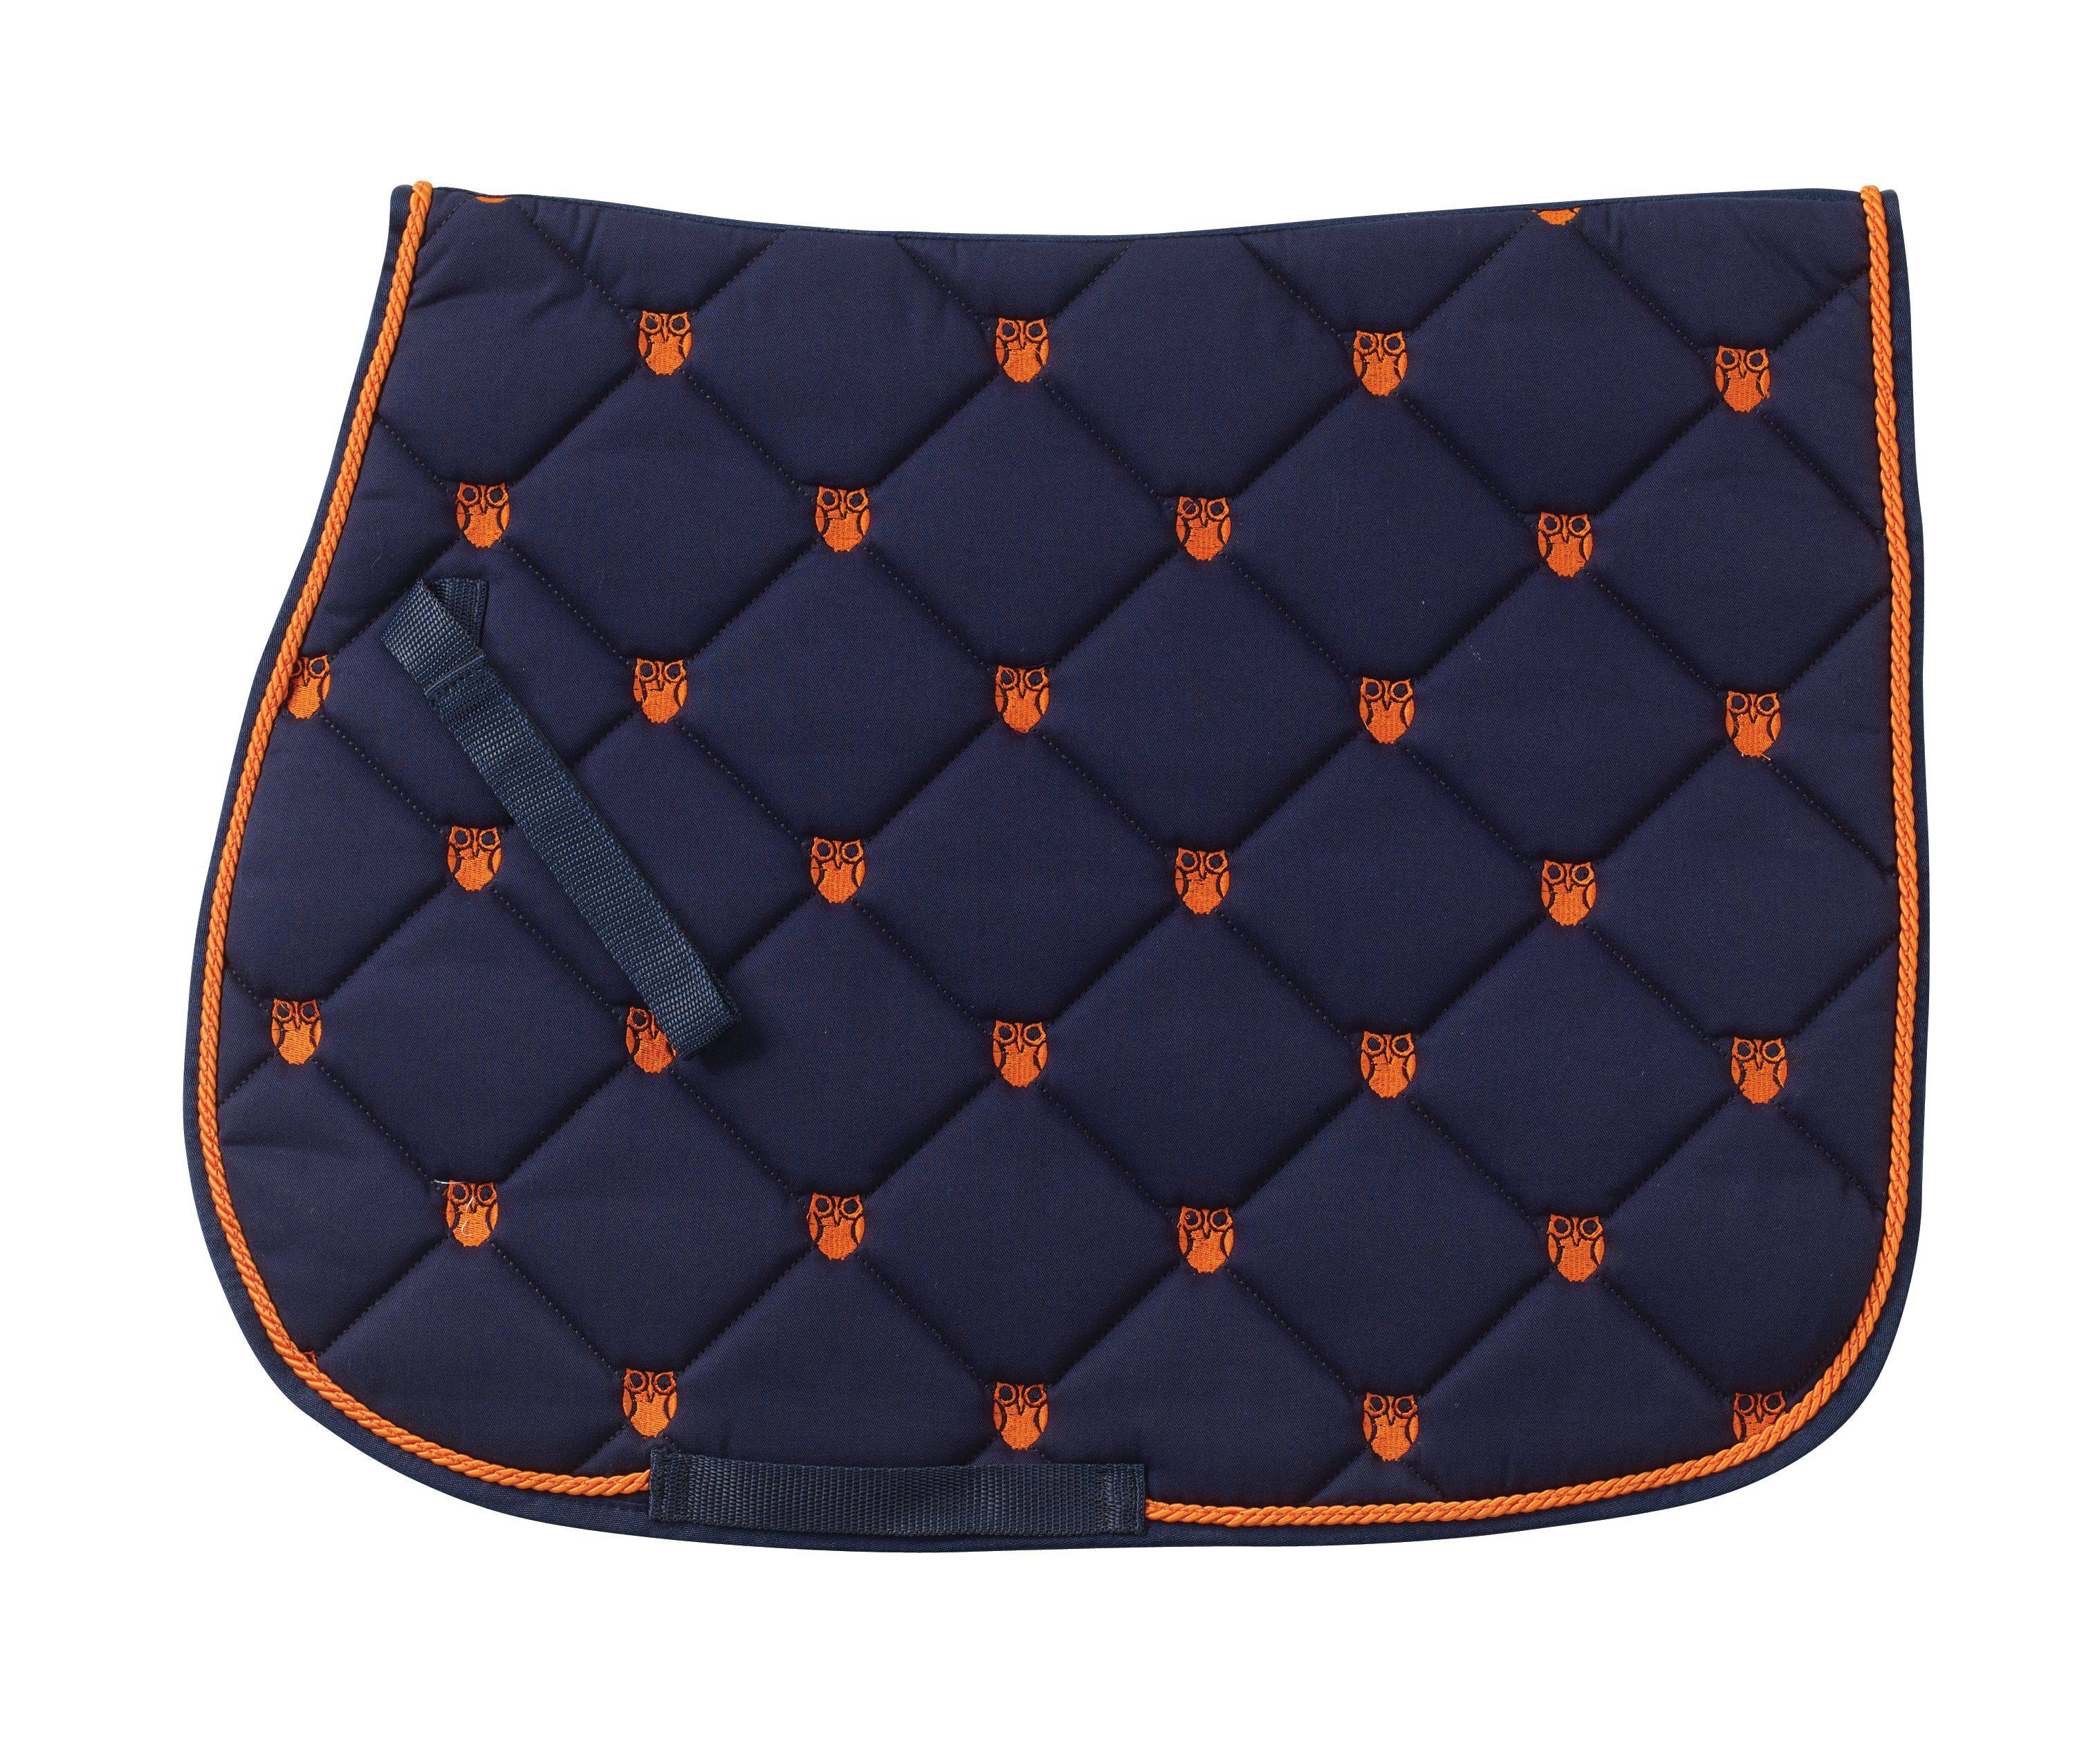 Centaur Owls Saddle Pad - All Purpose